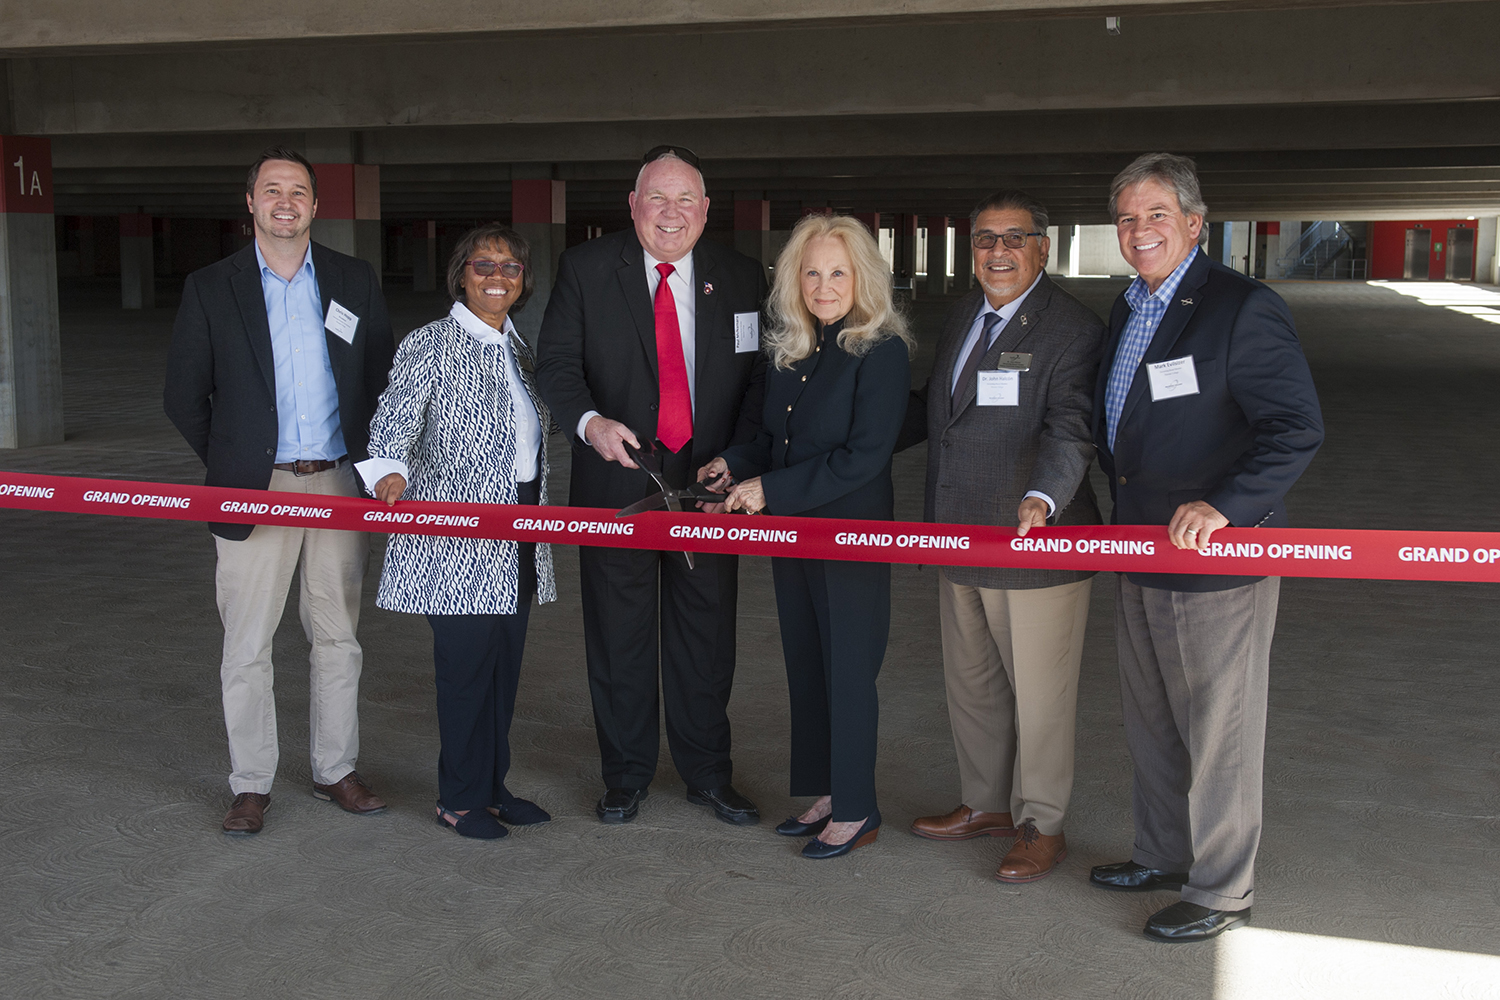 Palomar College Unveils New Parking Structure in Grand Opening